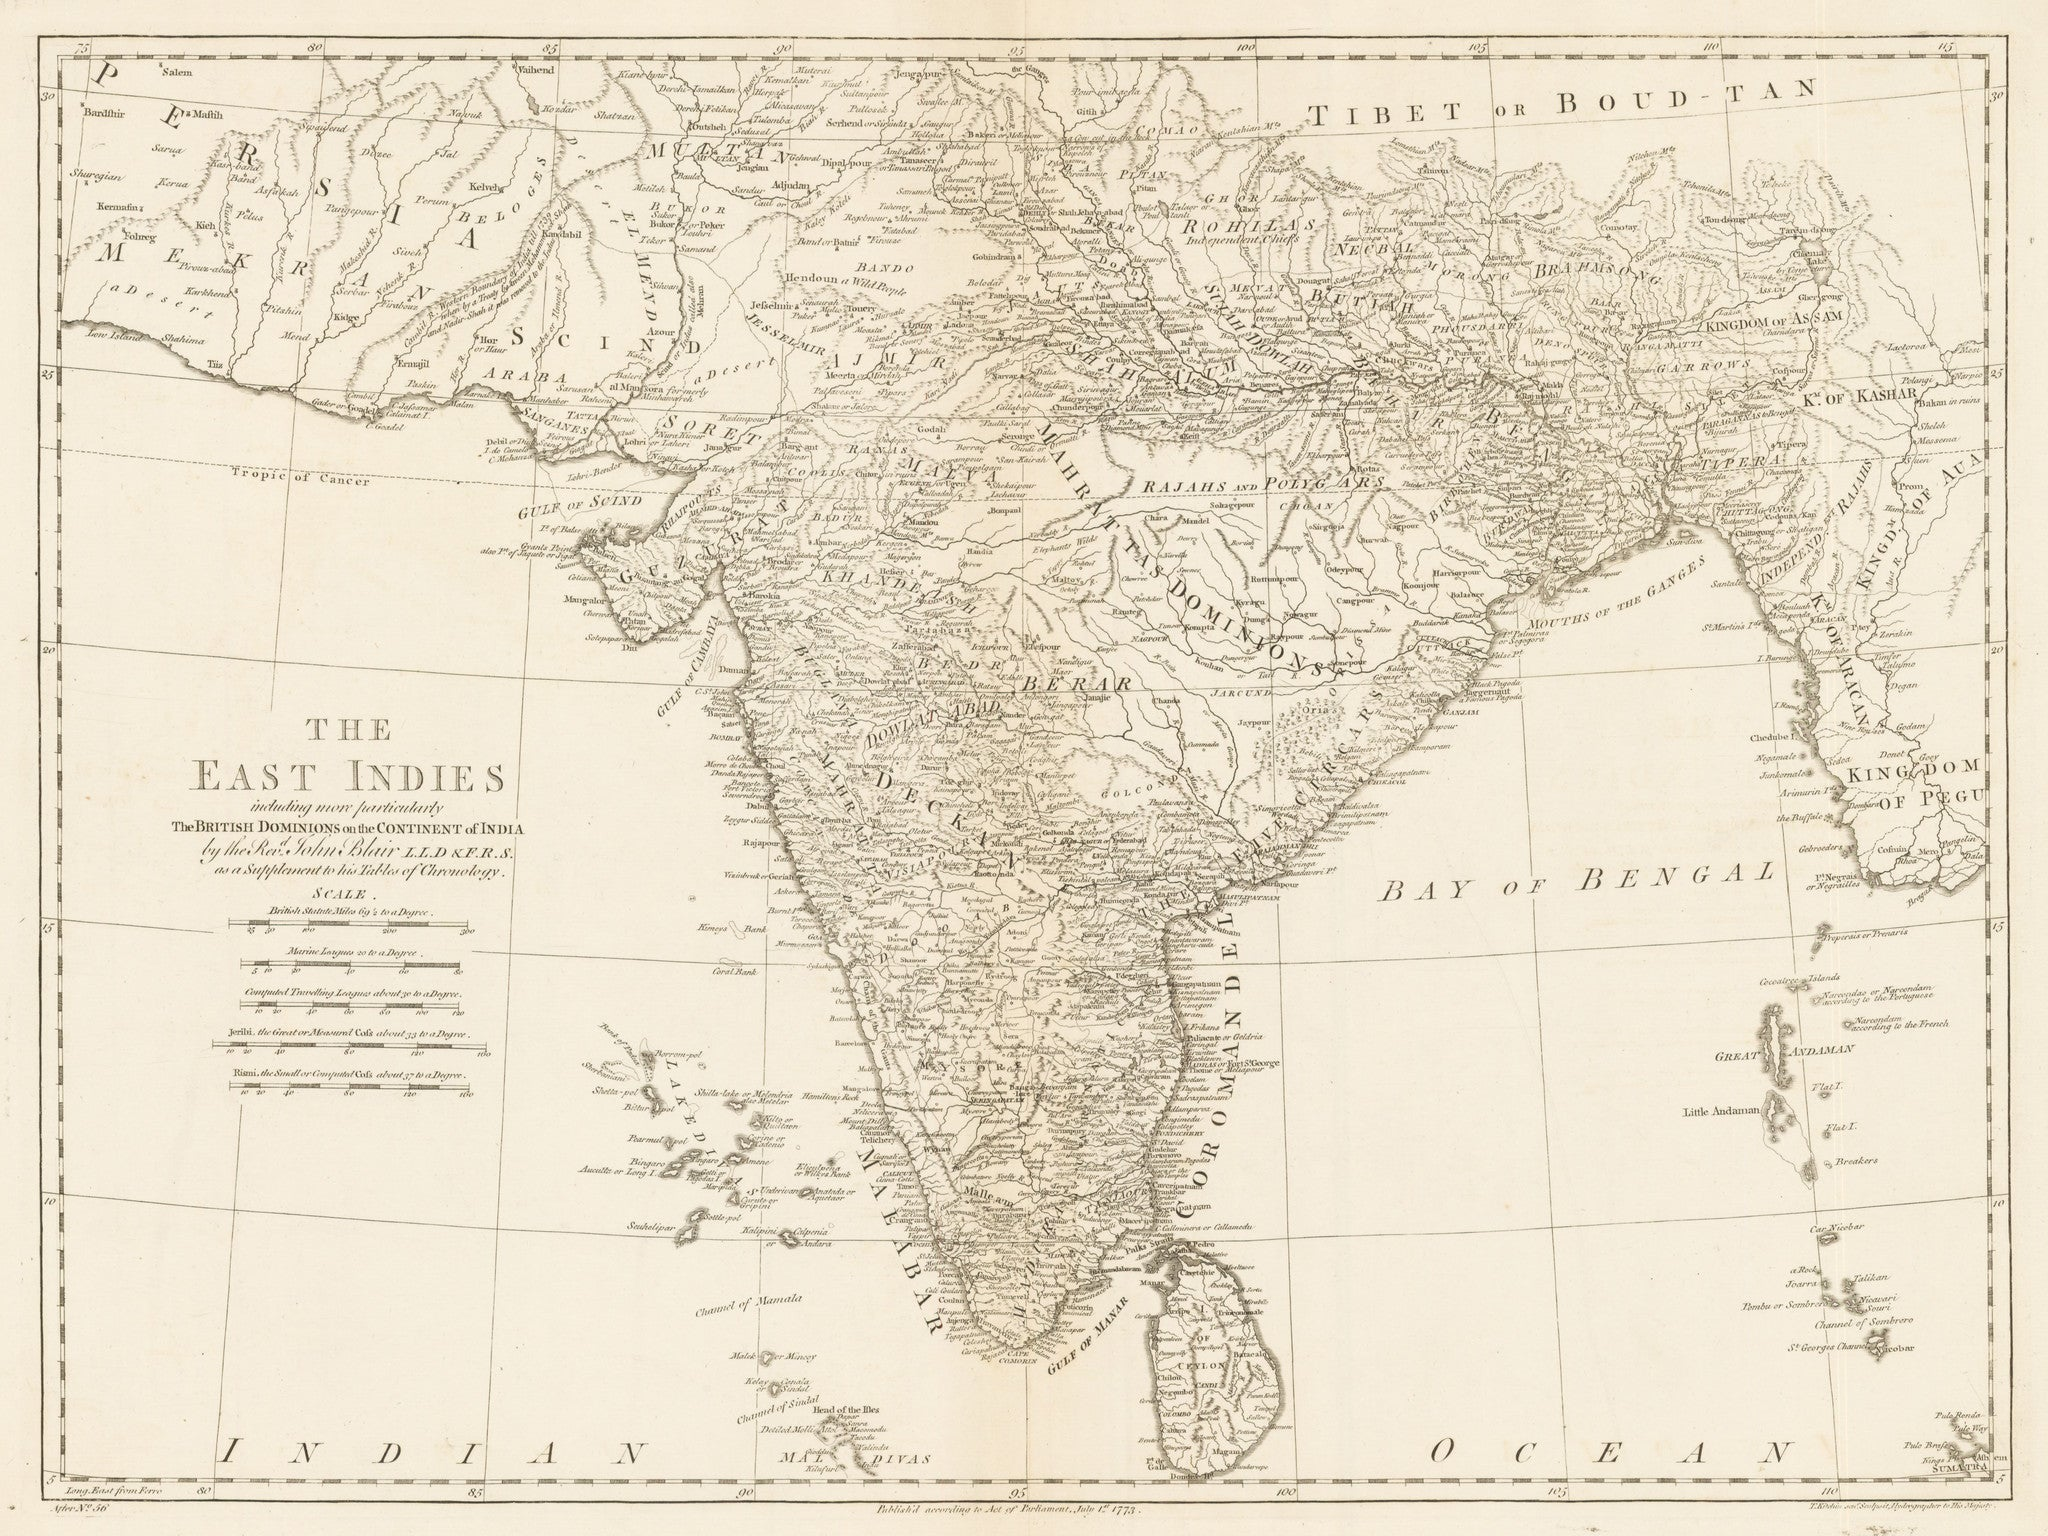 The East Indies, including more particularly the British Dominions on the Continent of India